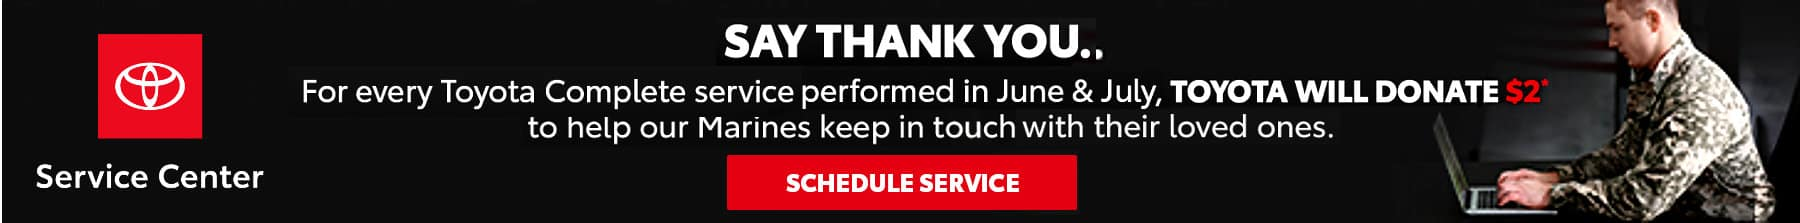 Toyota-Service-Schedule-Military